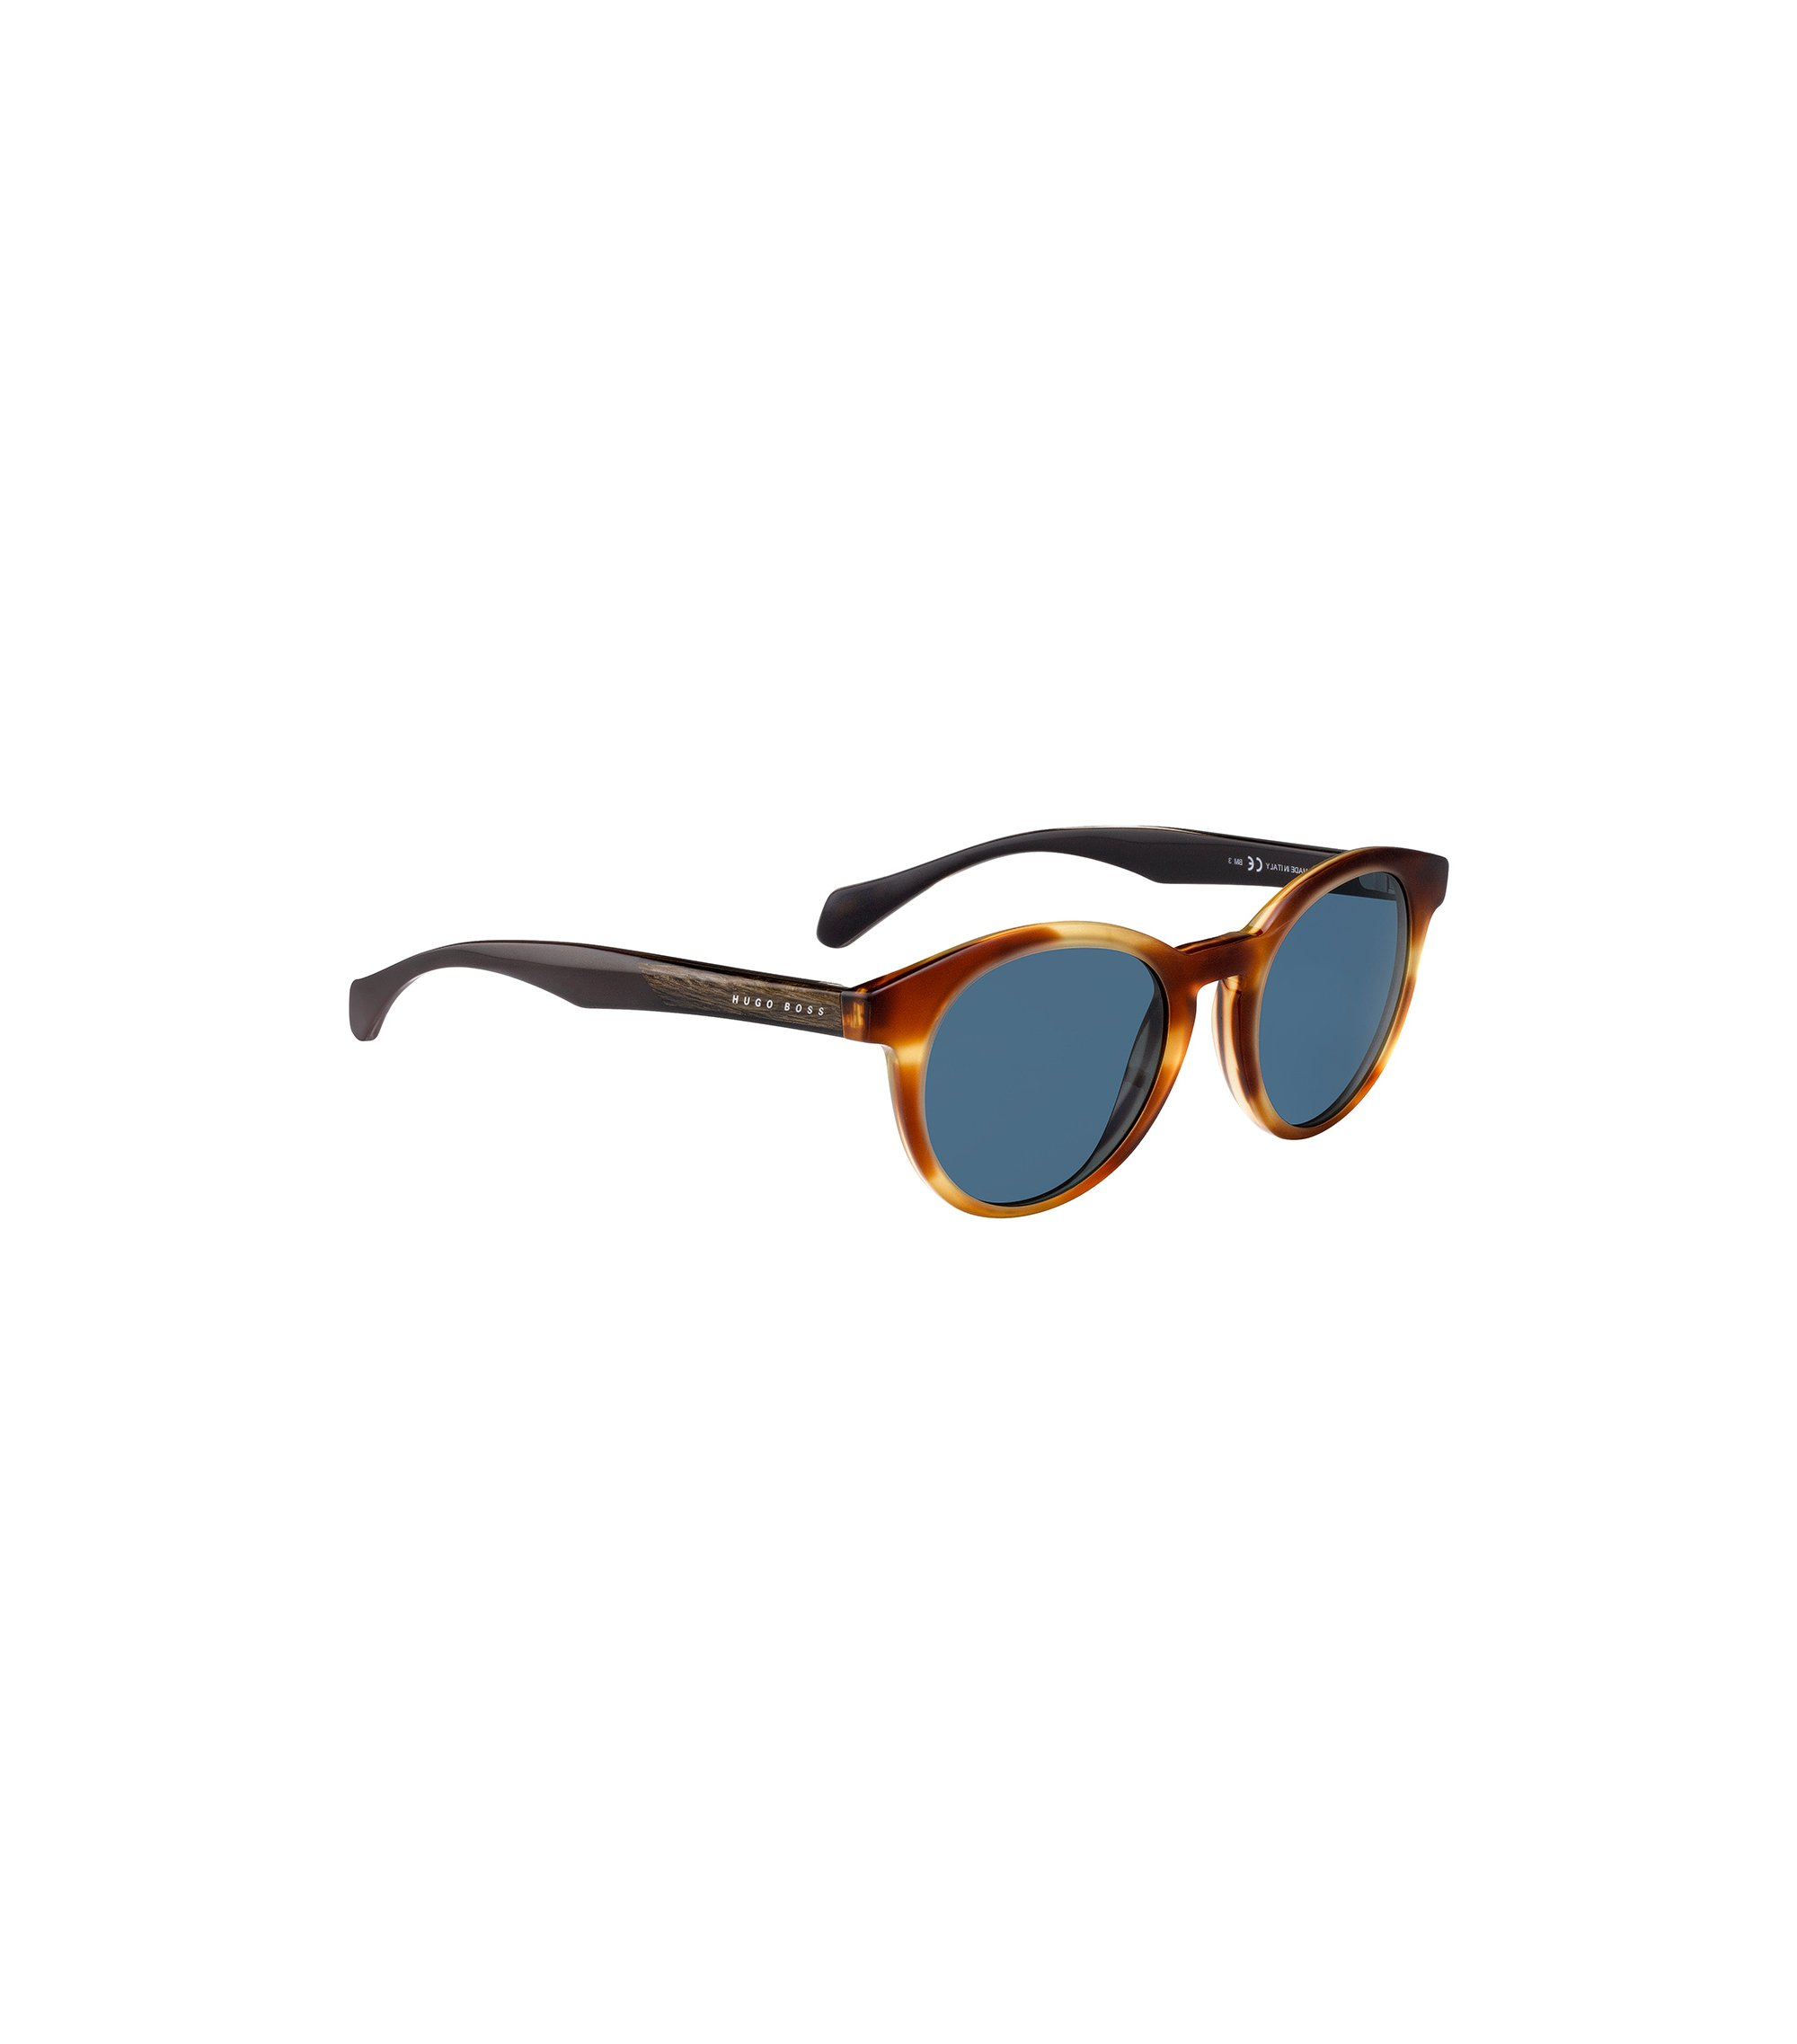 Horn Acetate Round Sunglasses | BOSS 0912/S, Assorted-Pre-Pack